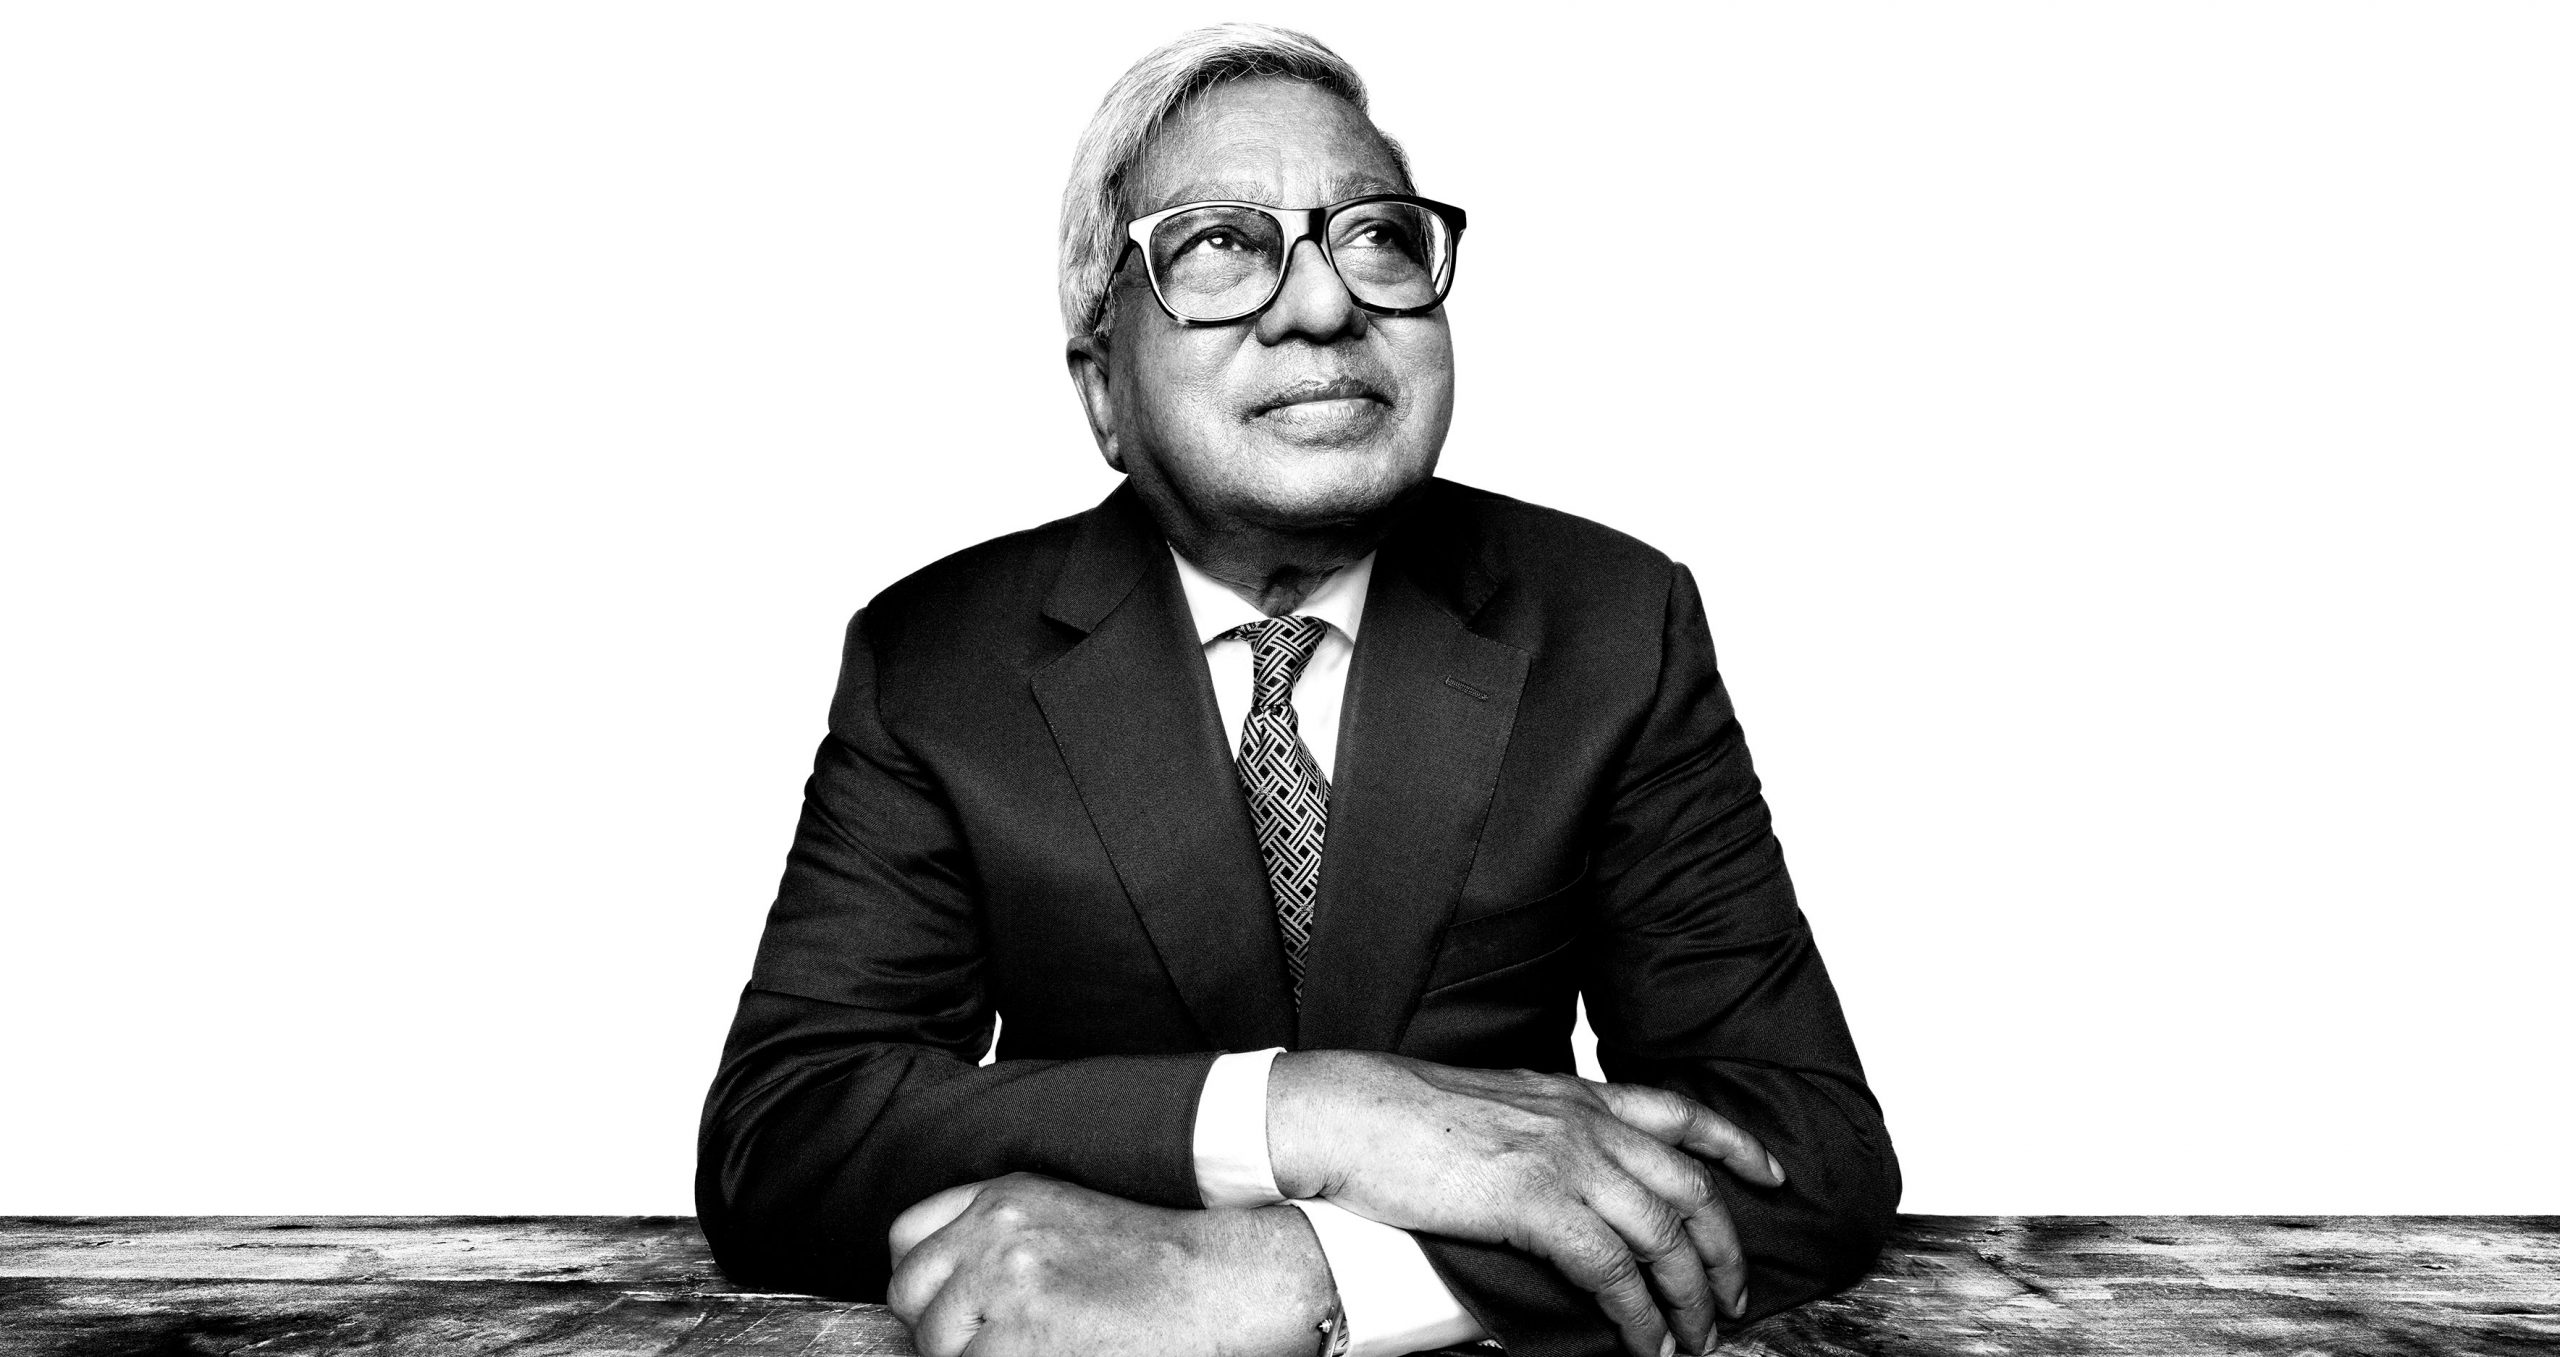 Sir Fazle Hasan Abed. Photo by Platon